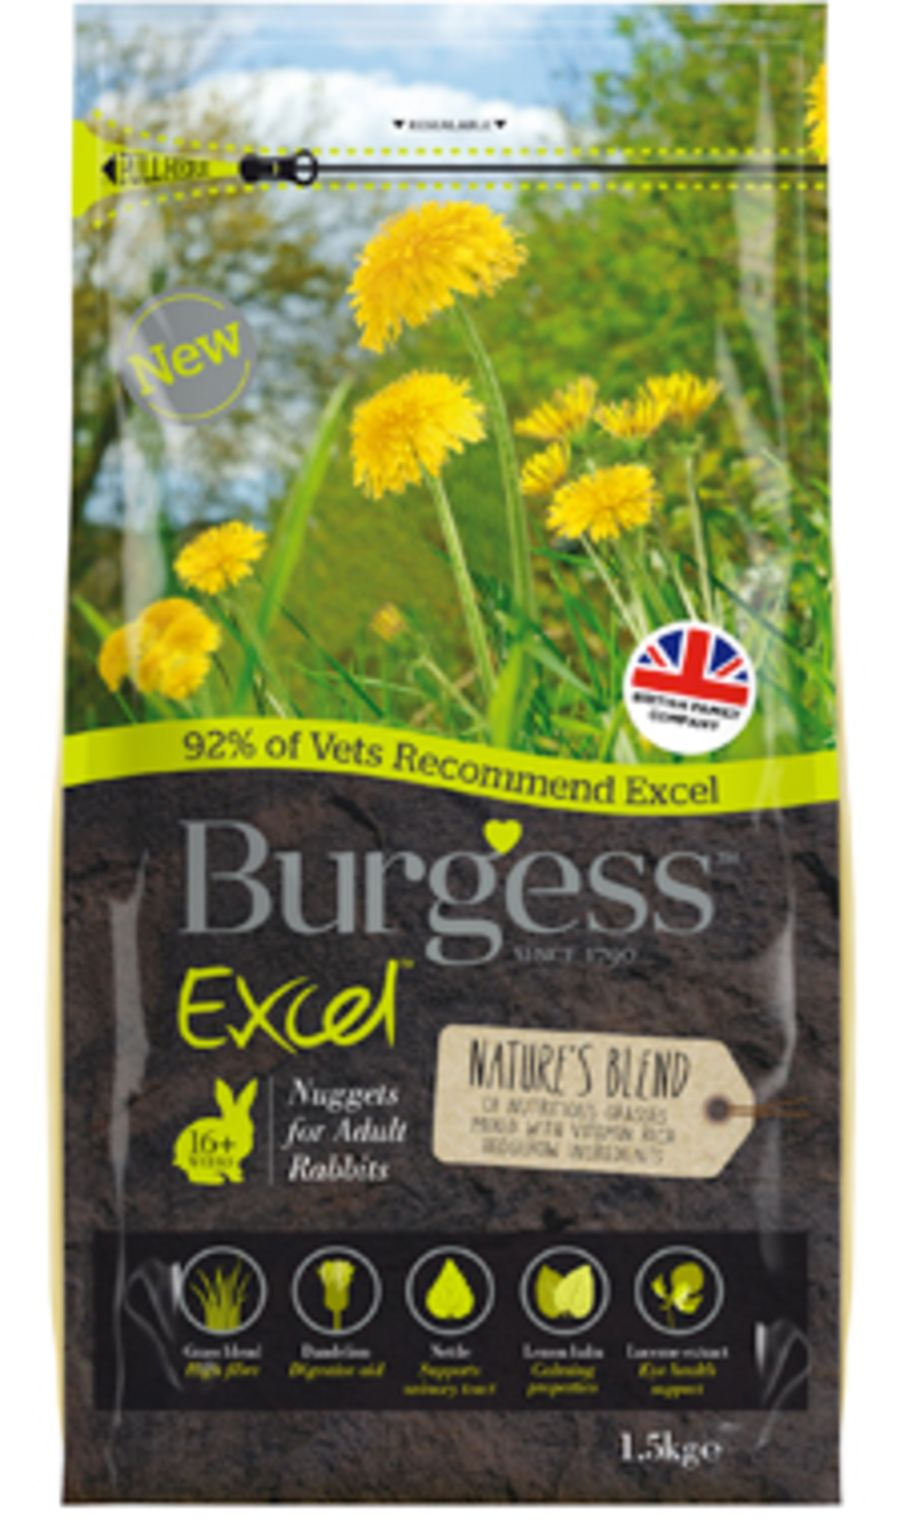 Burgess Excel Natures Blend Adult Rabbit Nuggets 1.5kg